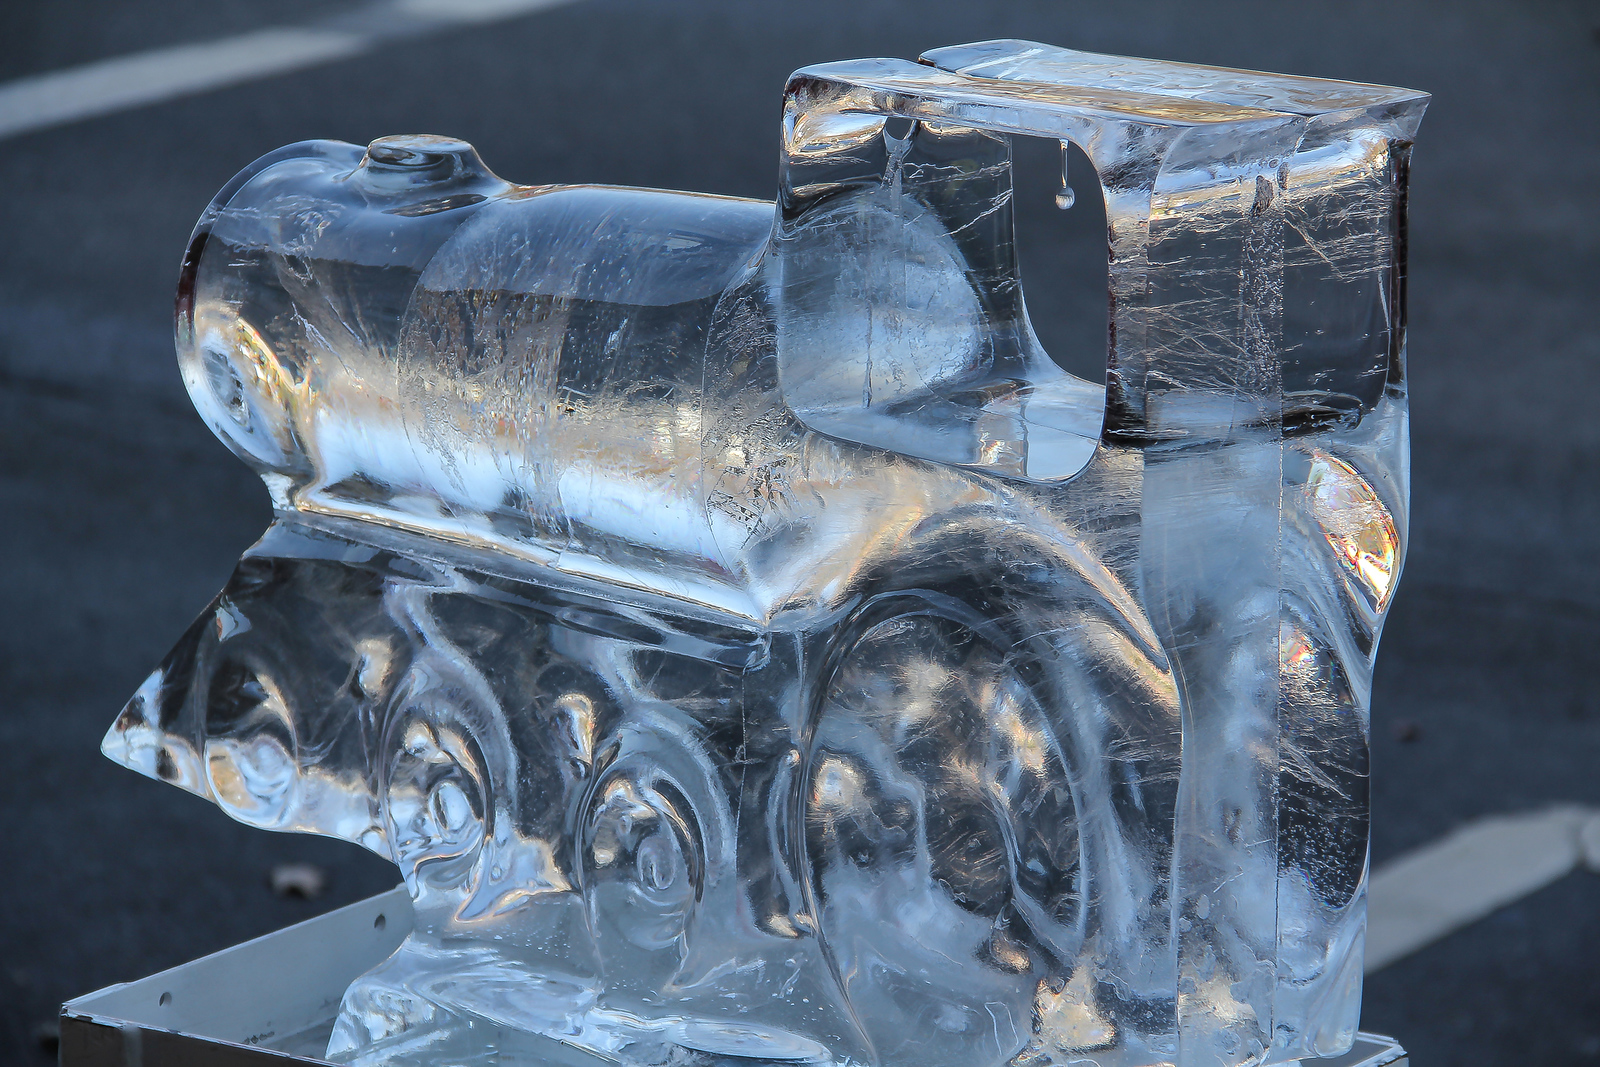 ALEC SMITH / GAZETTE A locomotive was among the ice sculptures on Public Square on Saturday during the 23rd Medina Ice Festival.